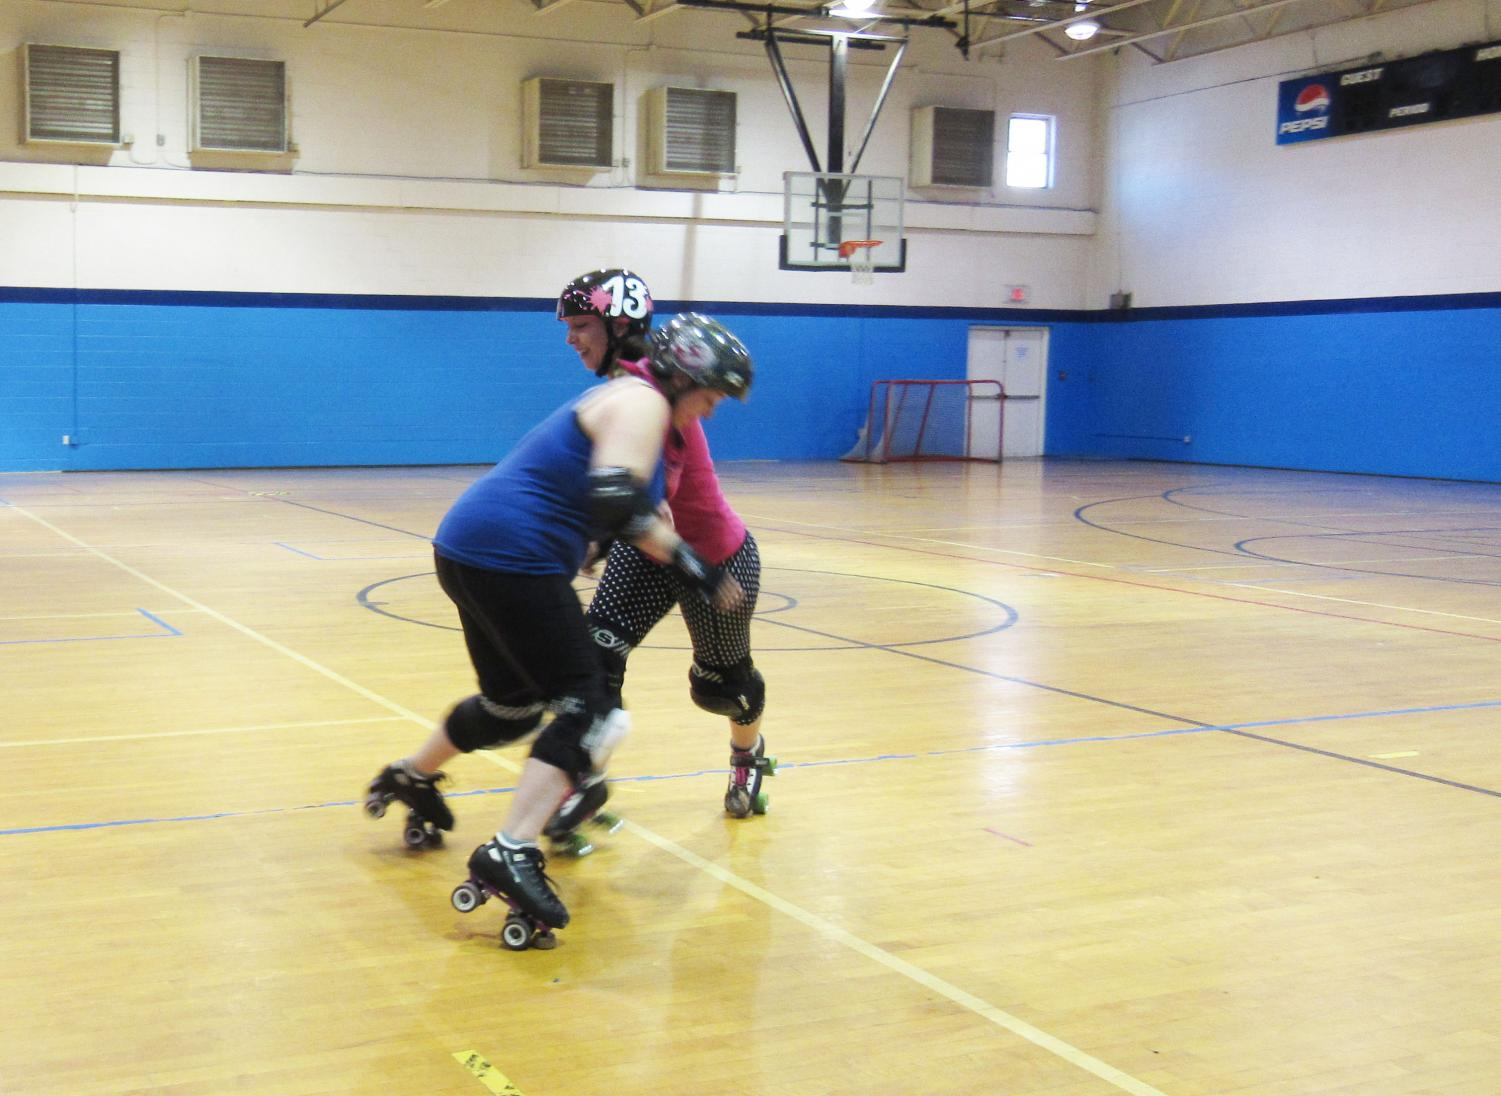 Johnstown Roller Girls team members Barb Mitchell and Kayla Blough, both of Johnstown, demonstrate what it looks like to hit an opponent in a game.